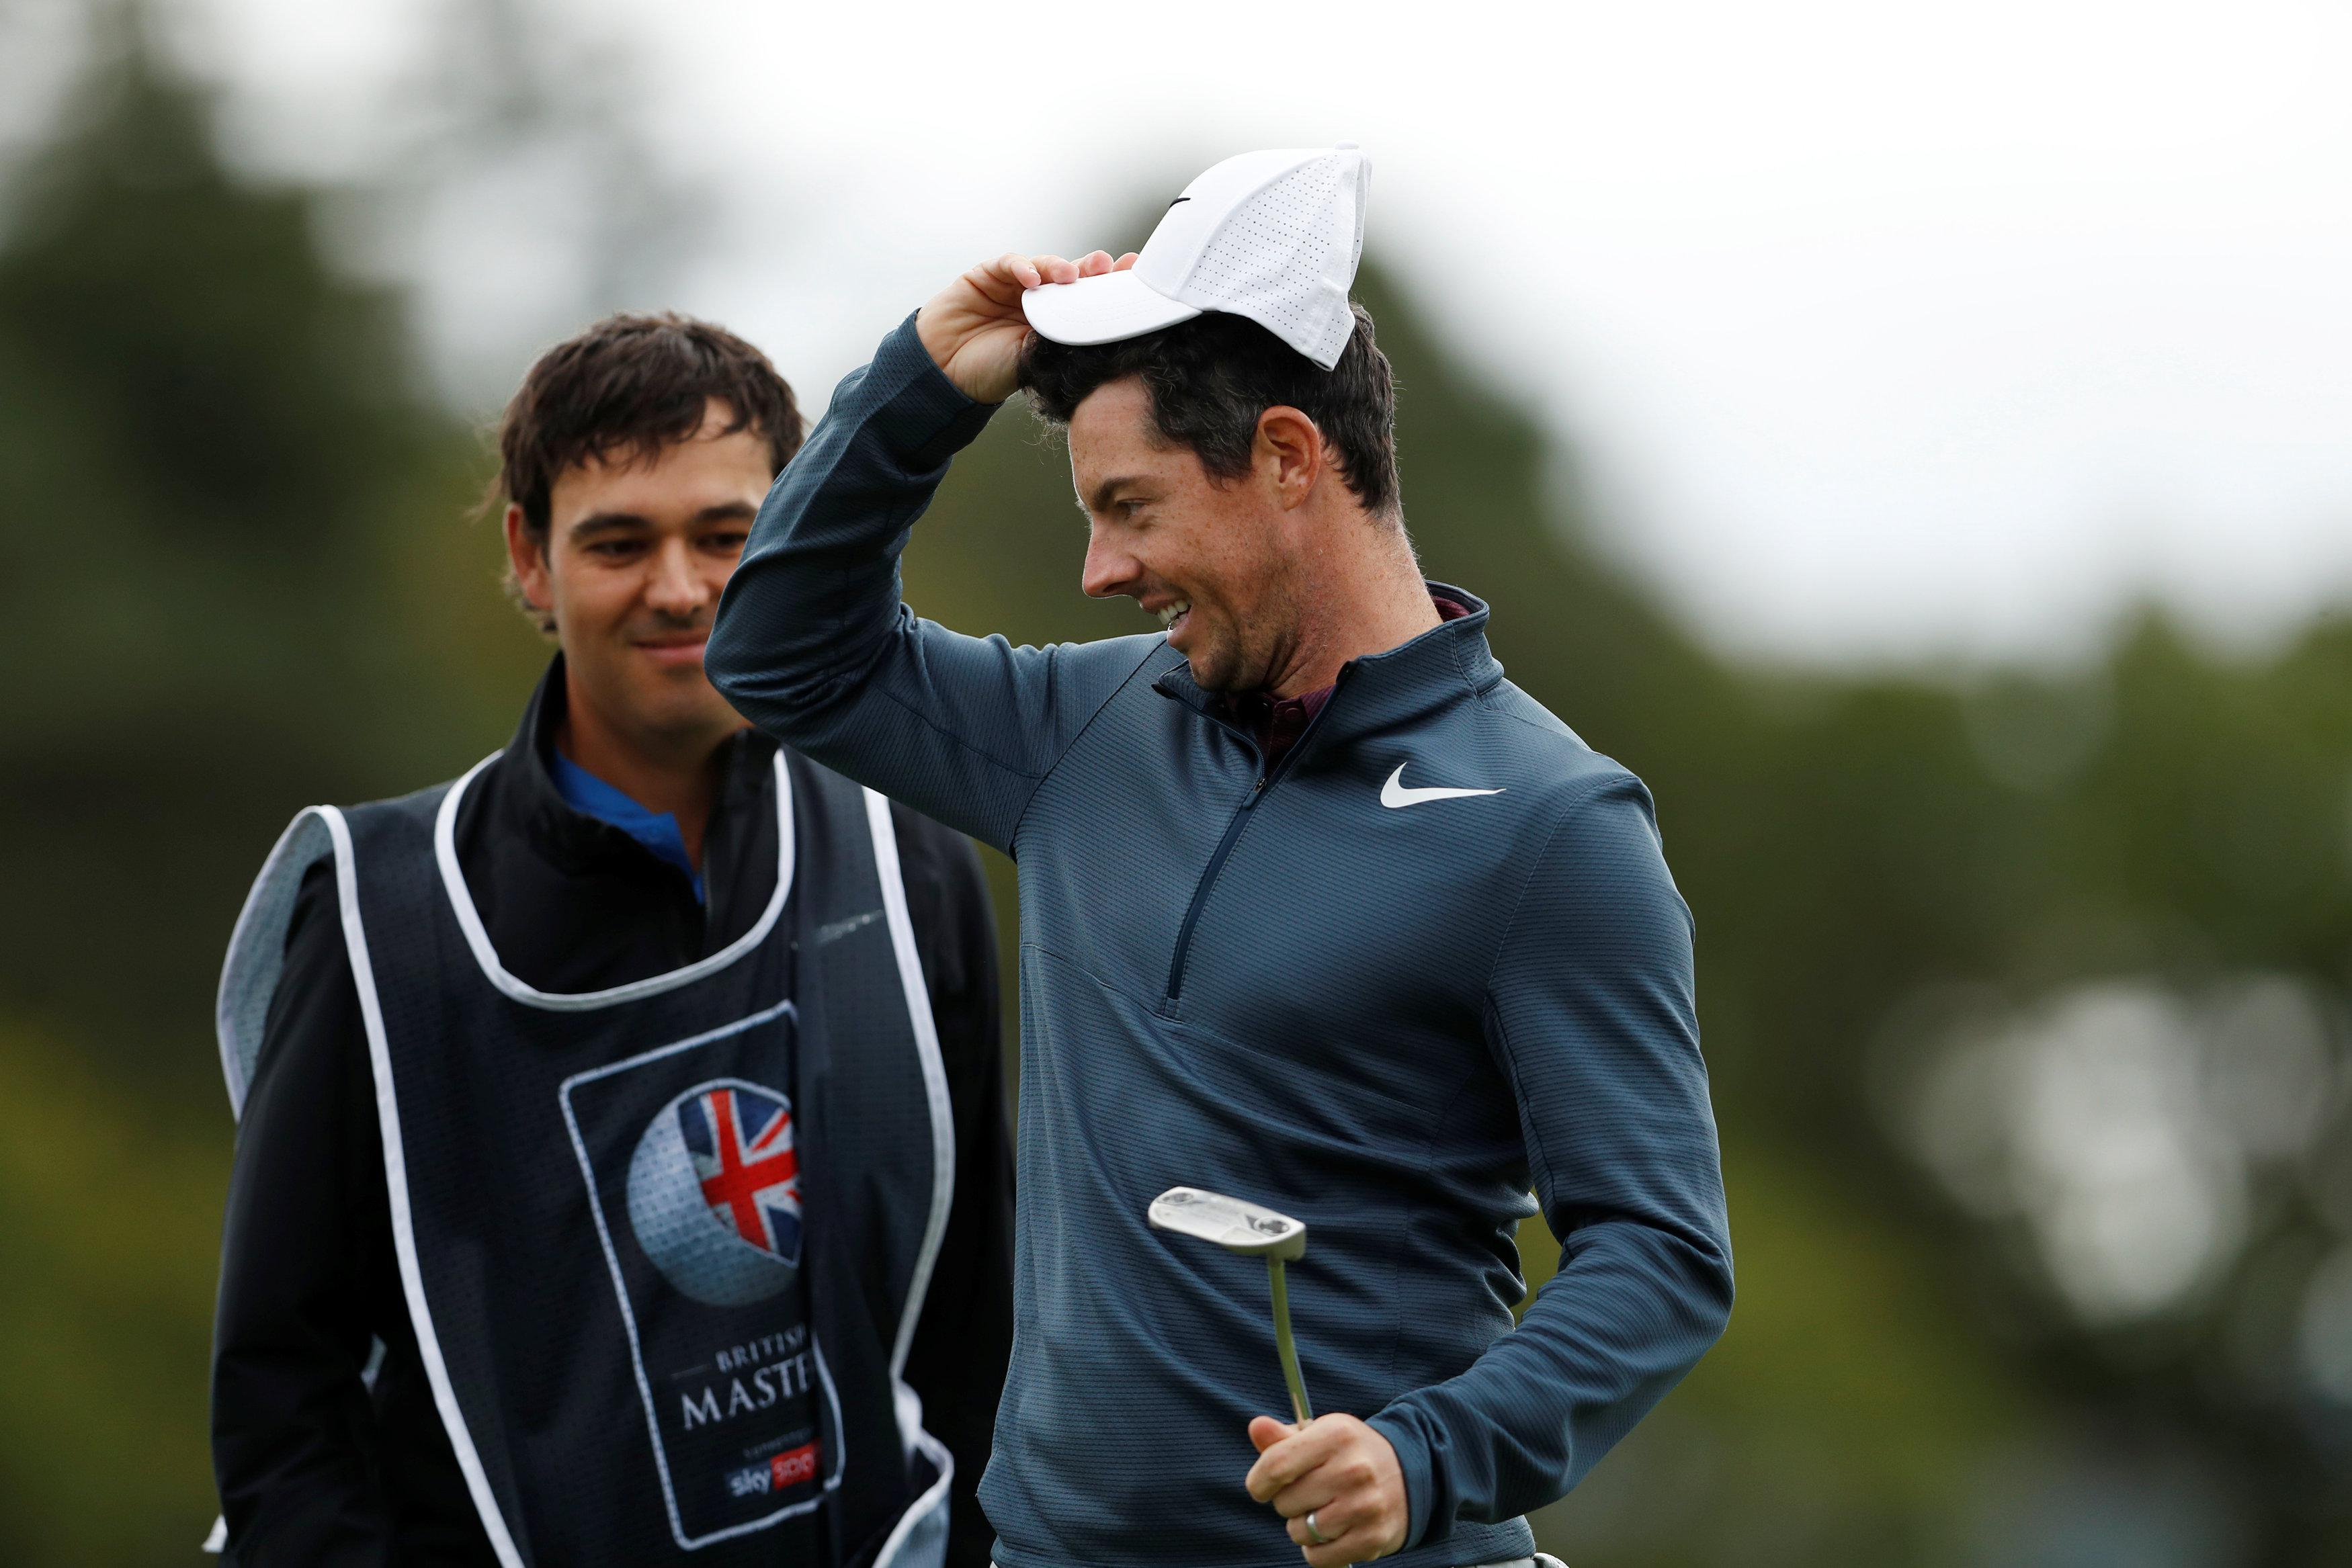 Rory McIlroy shot a final-round 63 to complete the lowest weekend score of his career